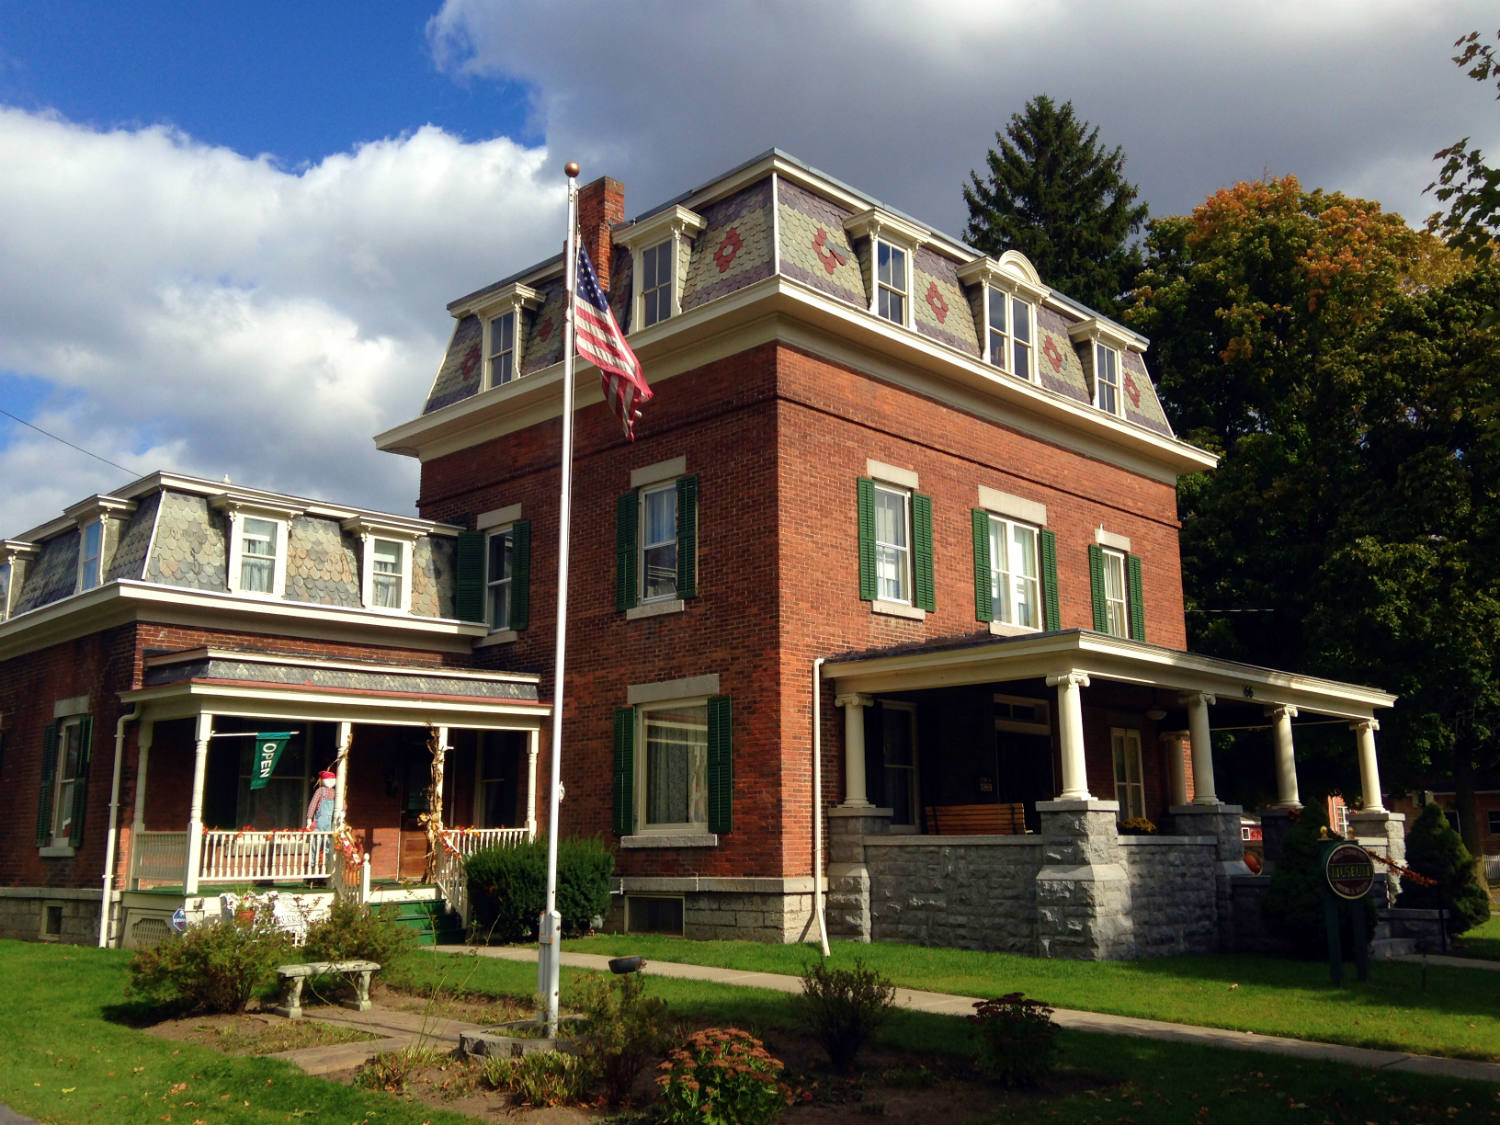 Howe House Museum in Phelps, NY